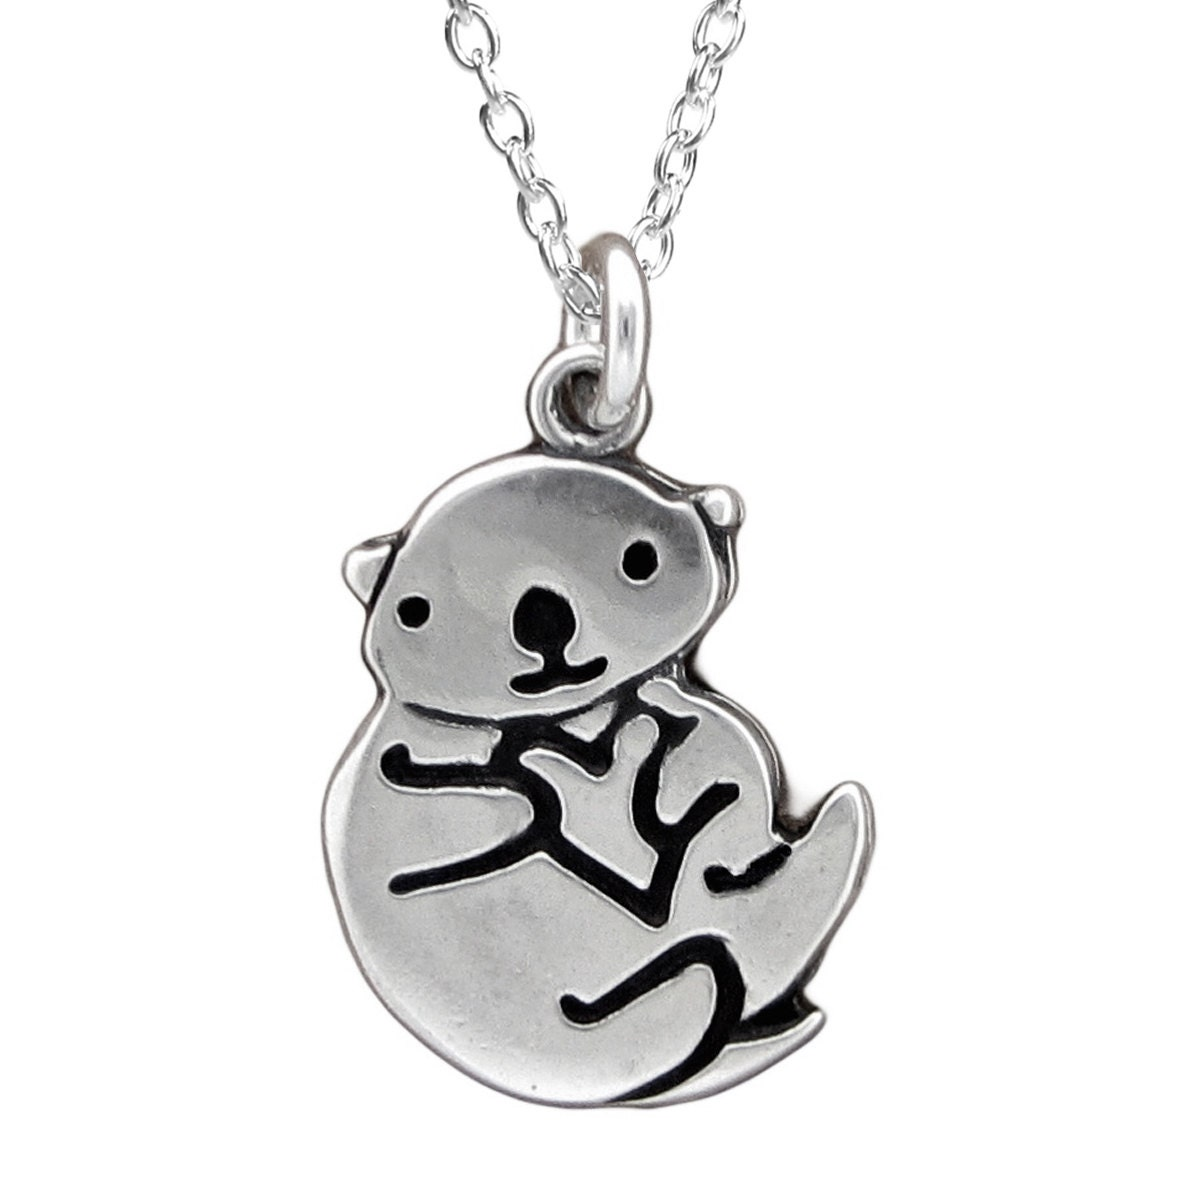 Otter necklace sterling silver sea otter pendant or charm zoom aloadofball Image collections